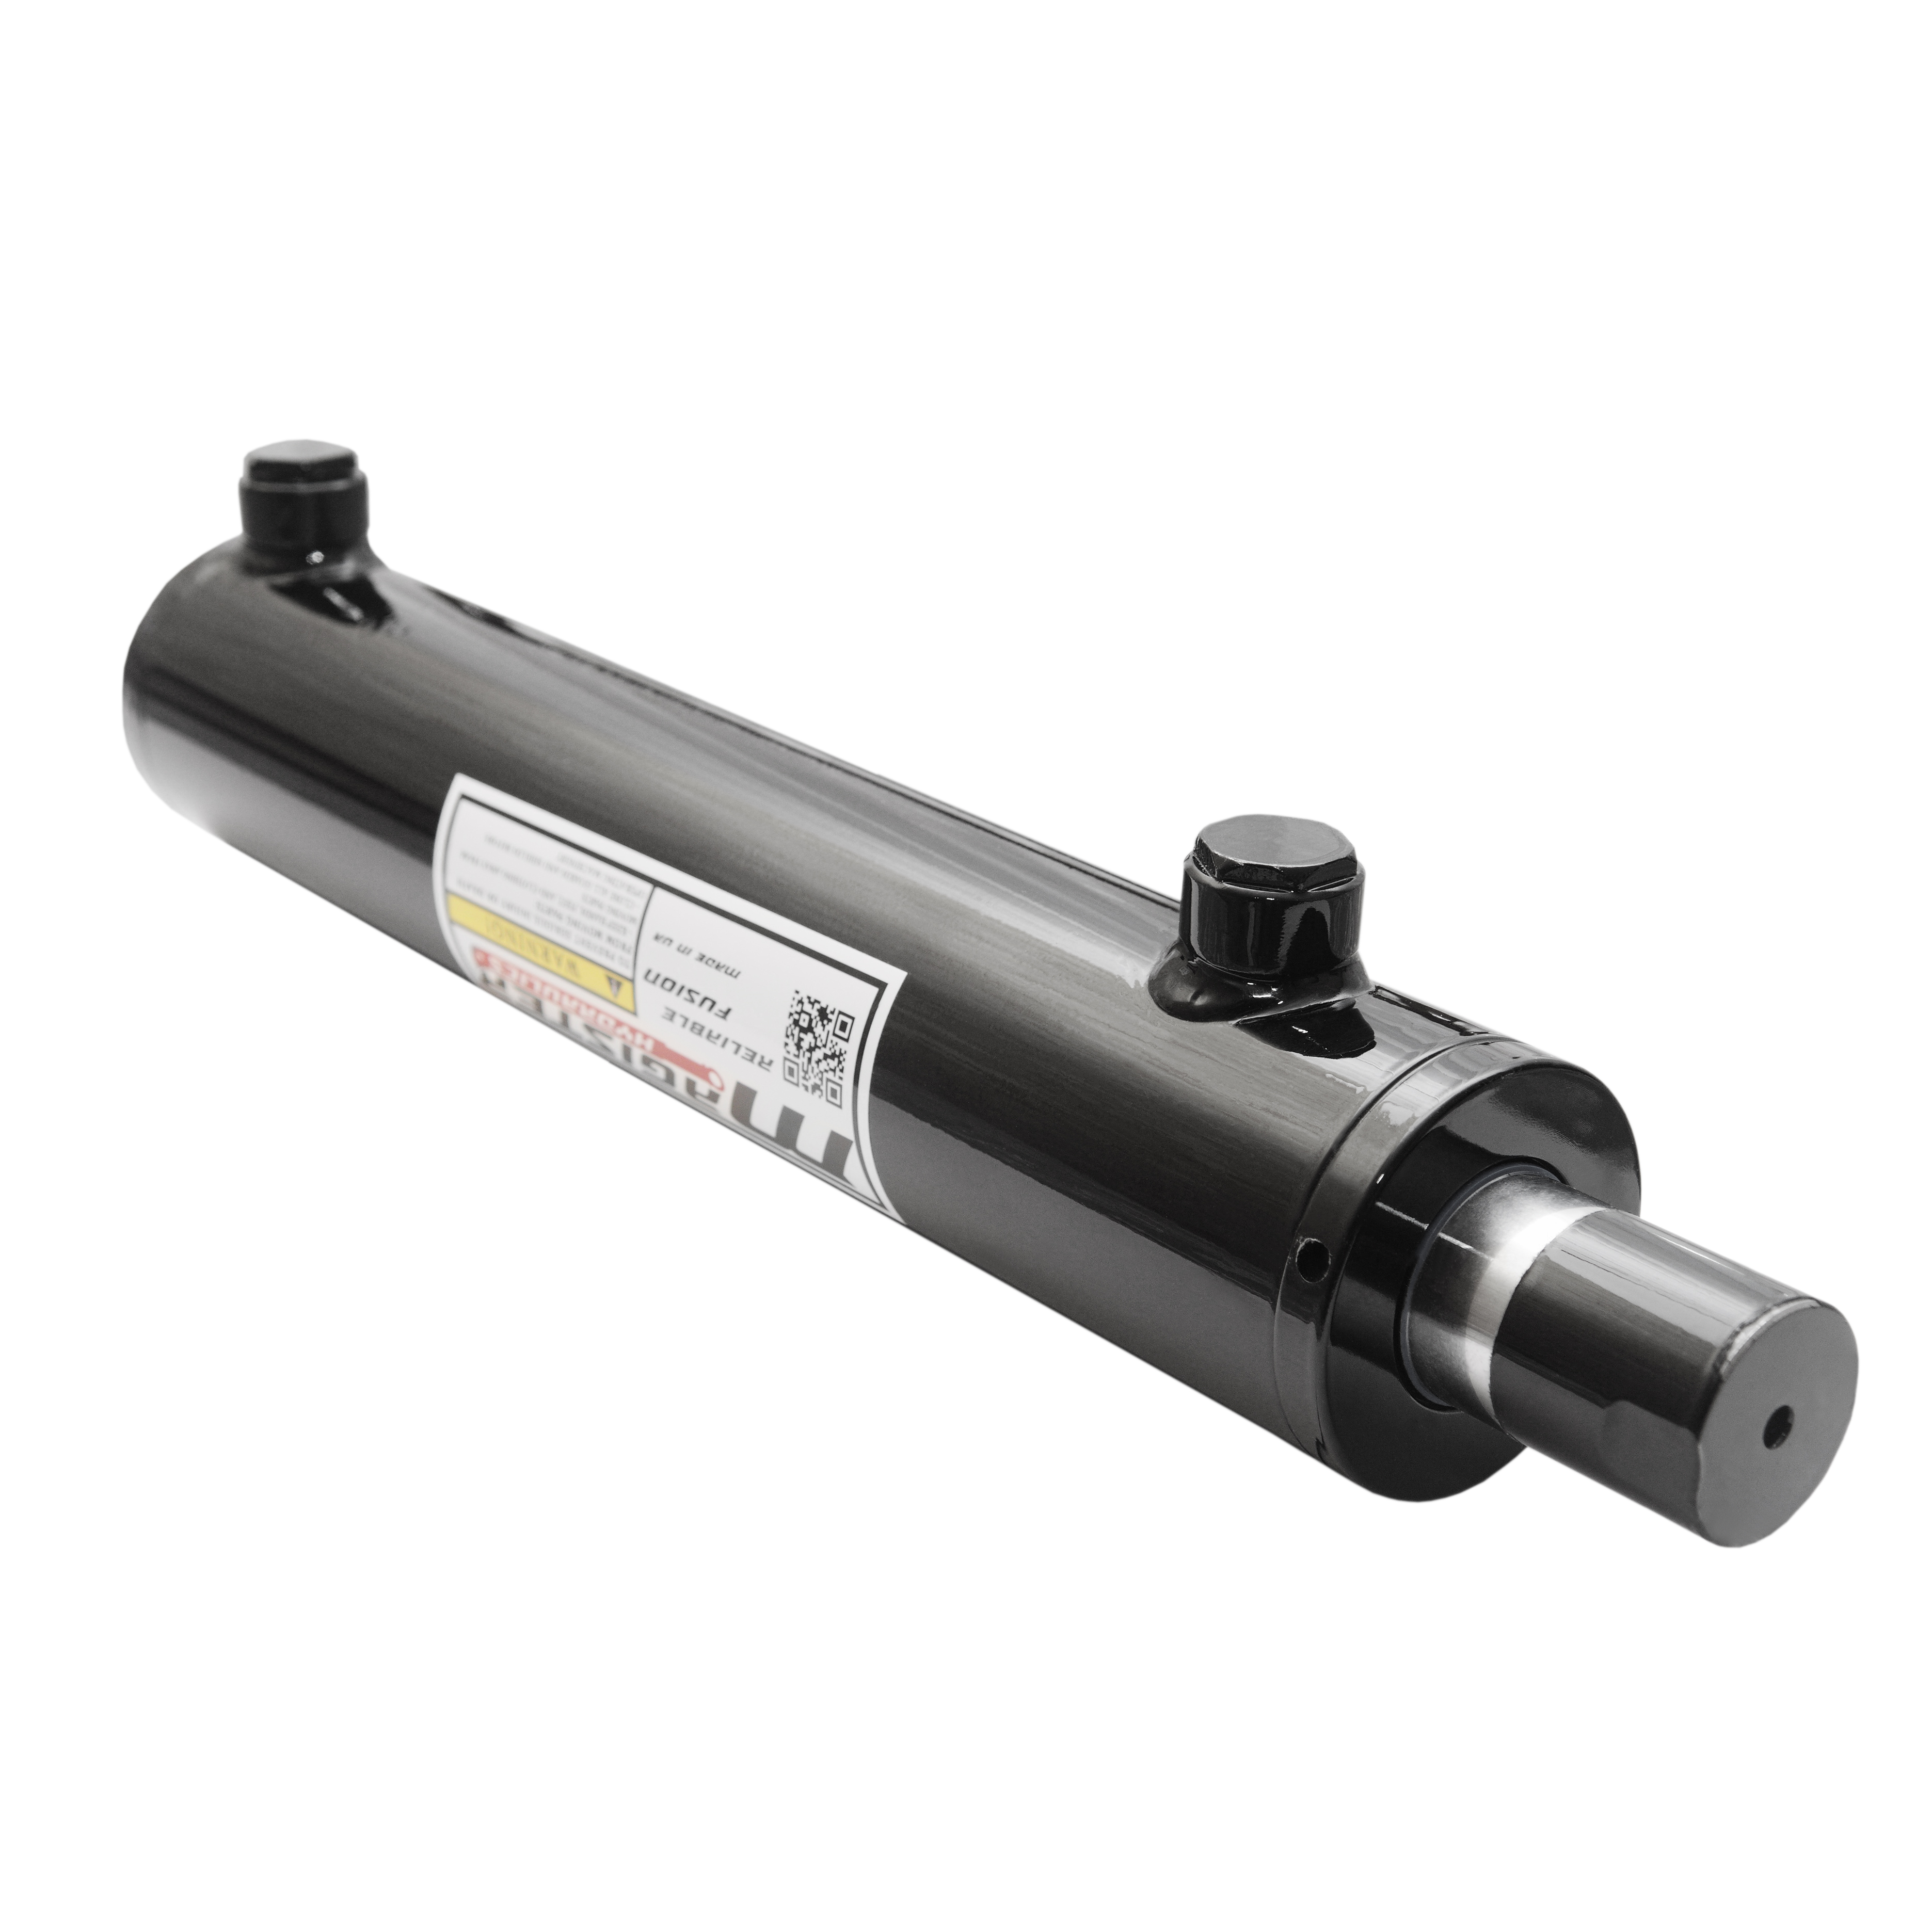 2 bore x 24 stroke hydraulic cylinder, welded universal double acting cylinder | Magister Hydraulics